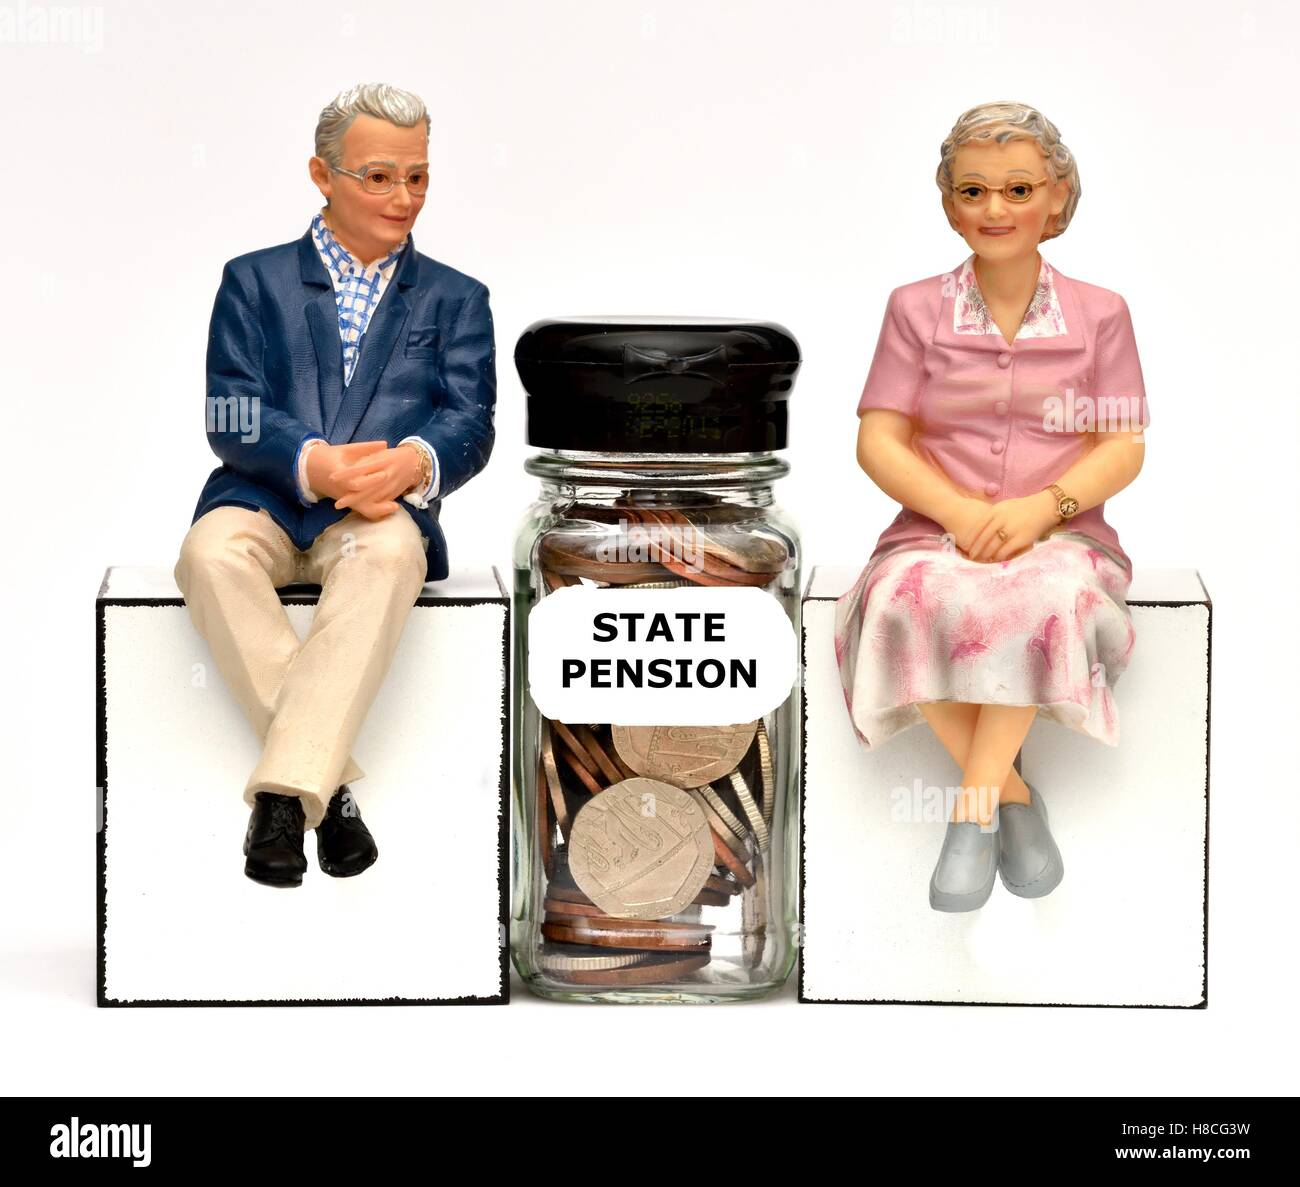 Two pensioner figurines with a state pension jar. - Stock Image